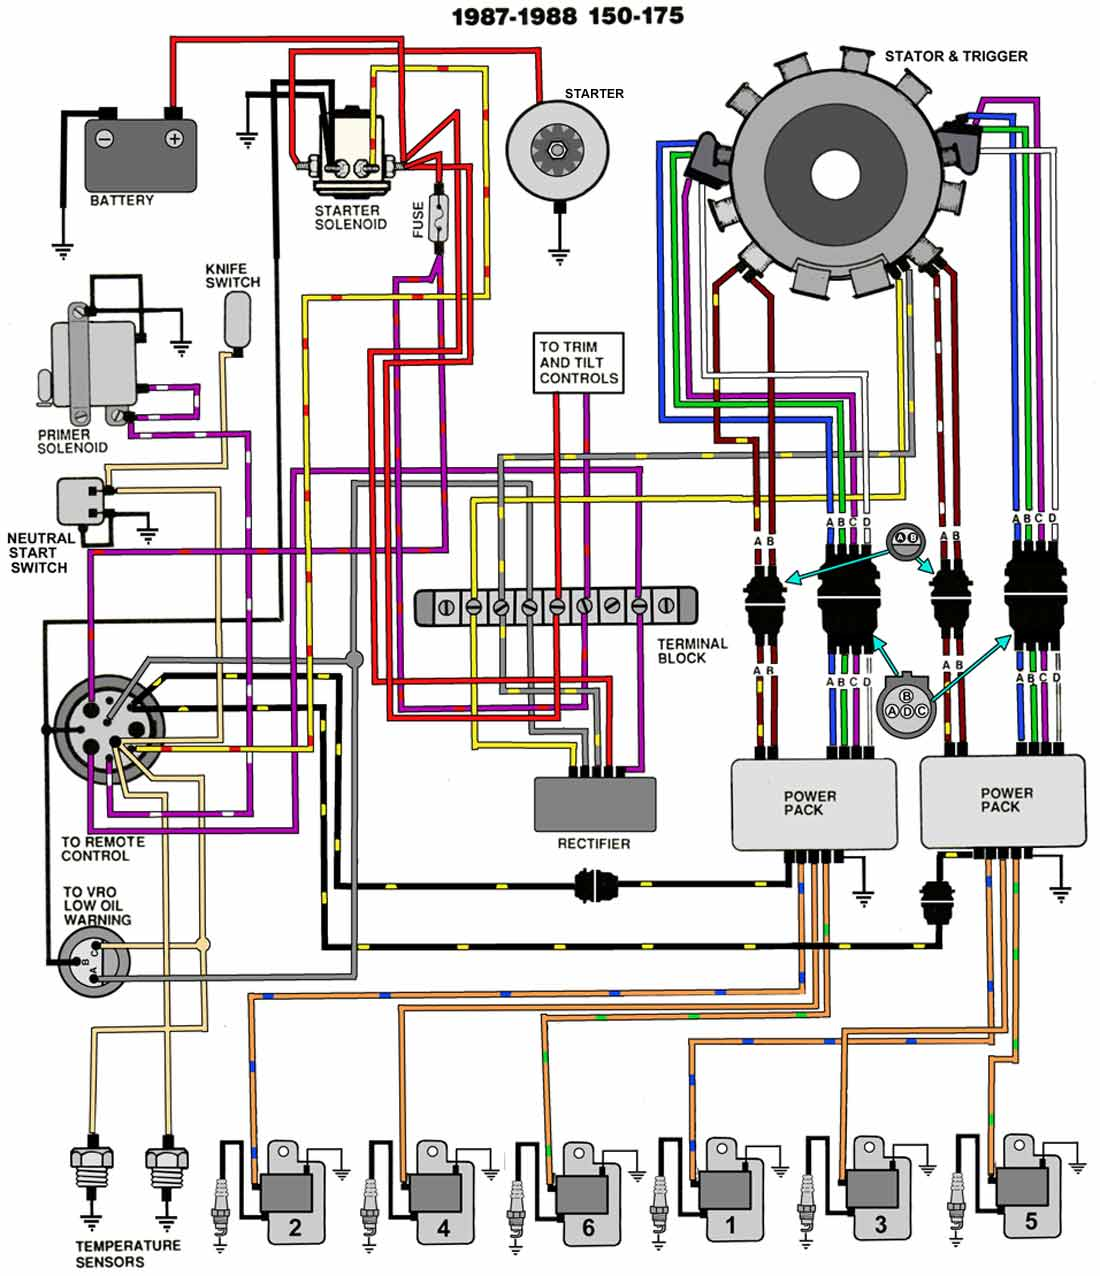 87_88_150_175 yamaha outboard motor wiring diagrams the wiring diagram OMC Inboard Outboard Wiring Diagrams at edmiracle.co